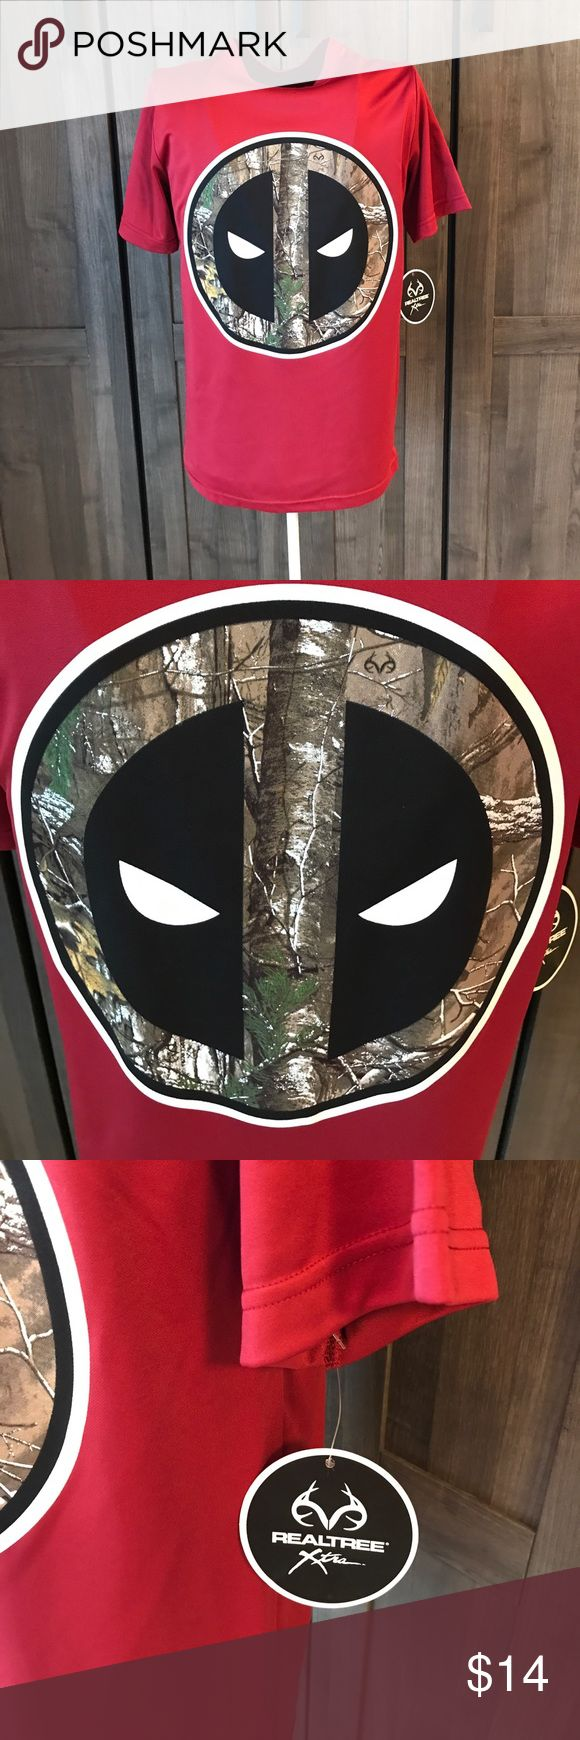 Real Tree Deadpool red and camouflage tee shirt Men's NWT Deadpool Real Tree camouflage tee shirt size small very soft 100% polyester. sweet bay Shirts Tees - Short Sleeve